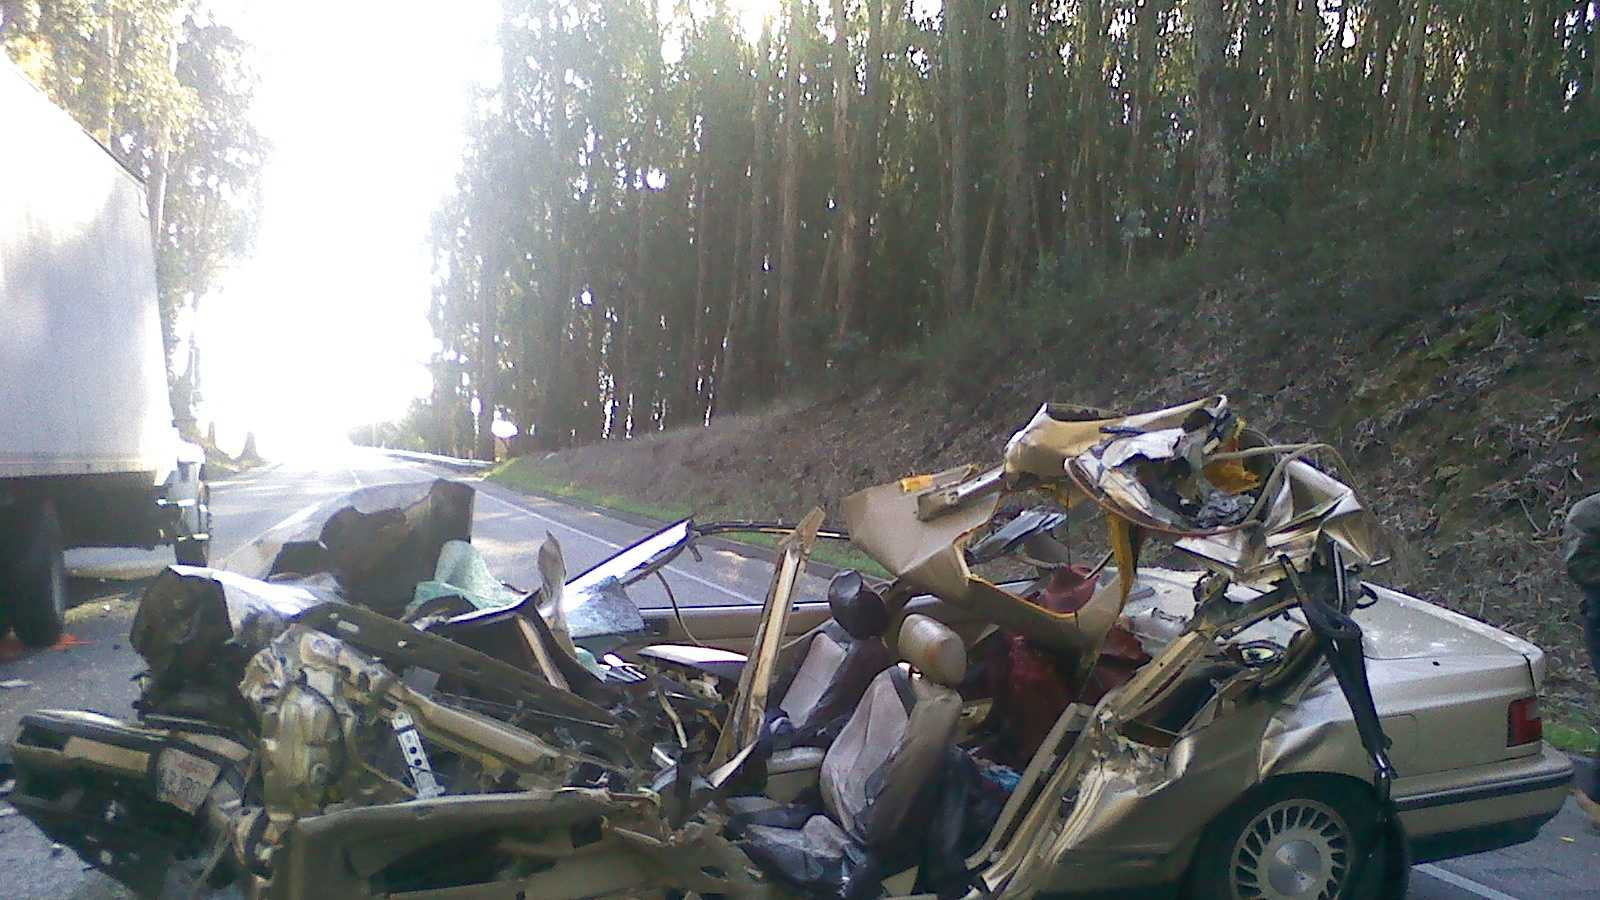 A 41-year-old Salinas man was killed Thursday morning after crashing into a truck traveling on Highway 101 south of Hollister.